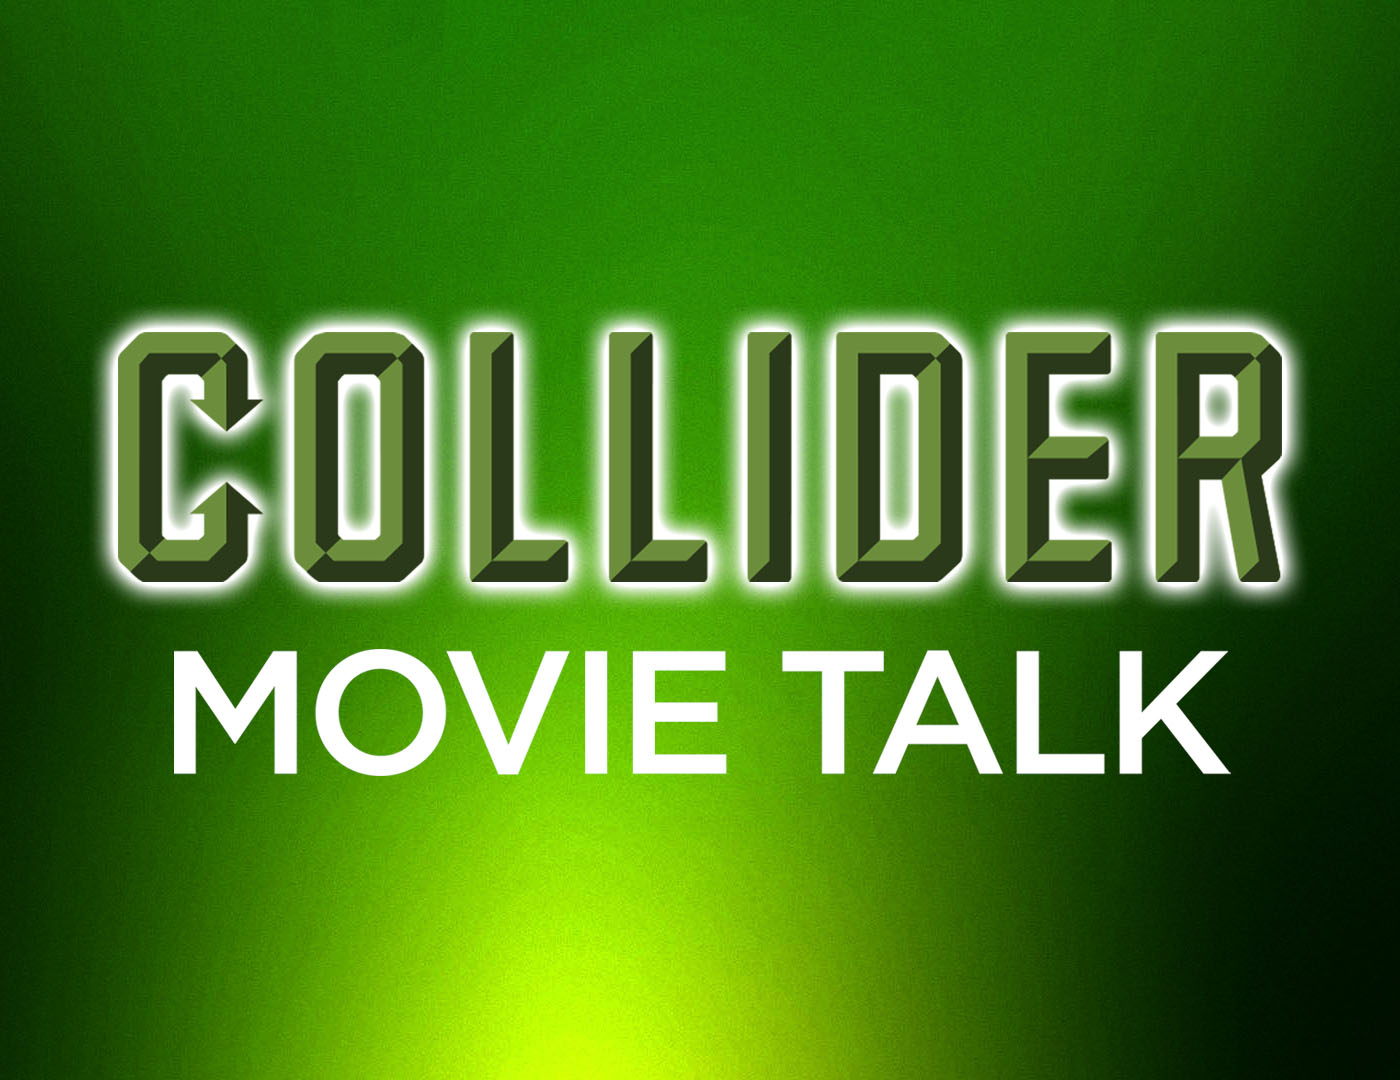 X-Men Reboot, Deadpool 3 - Collider Movie Talk